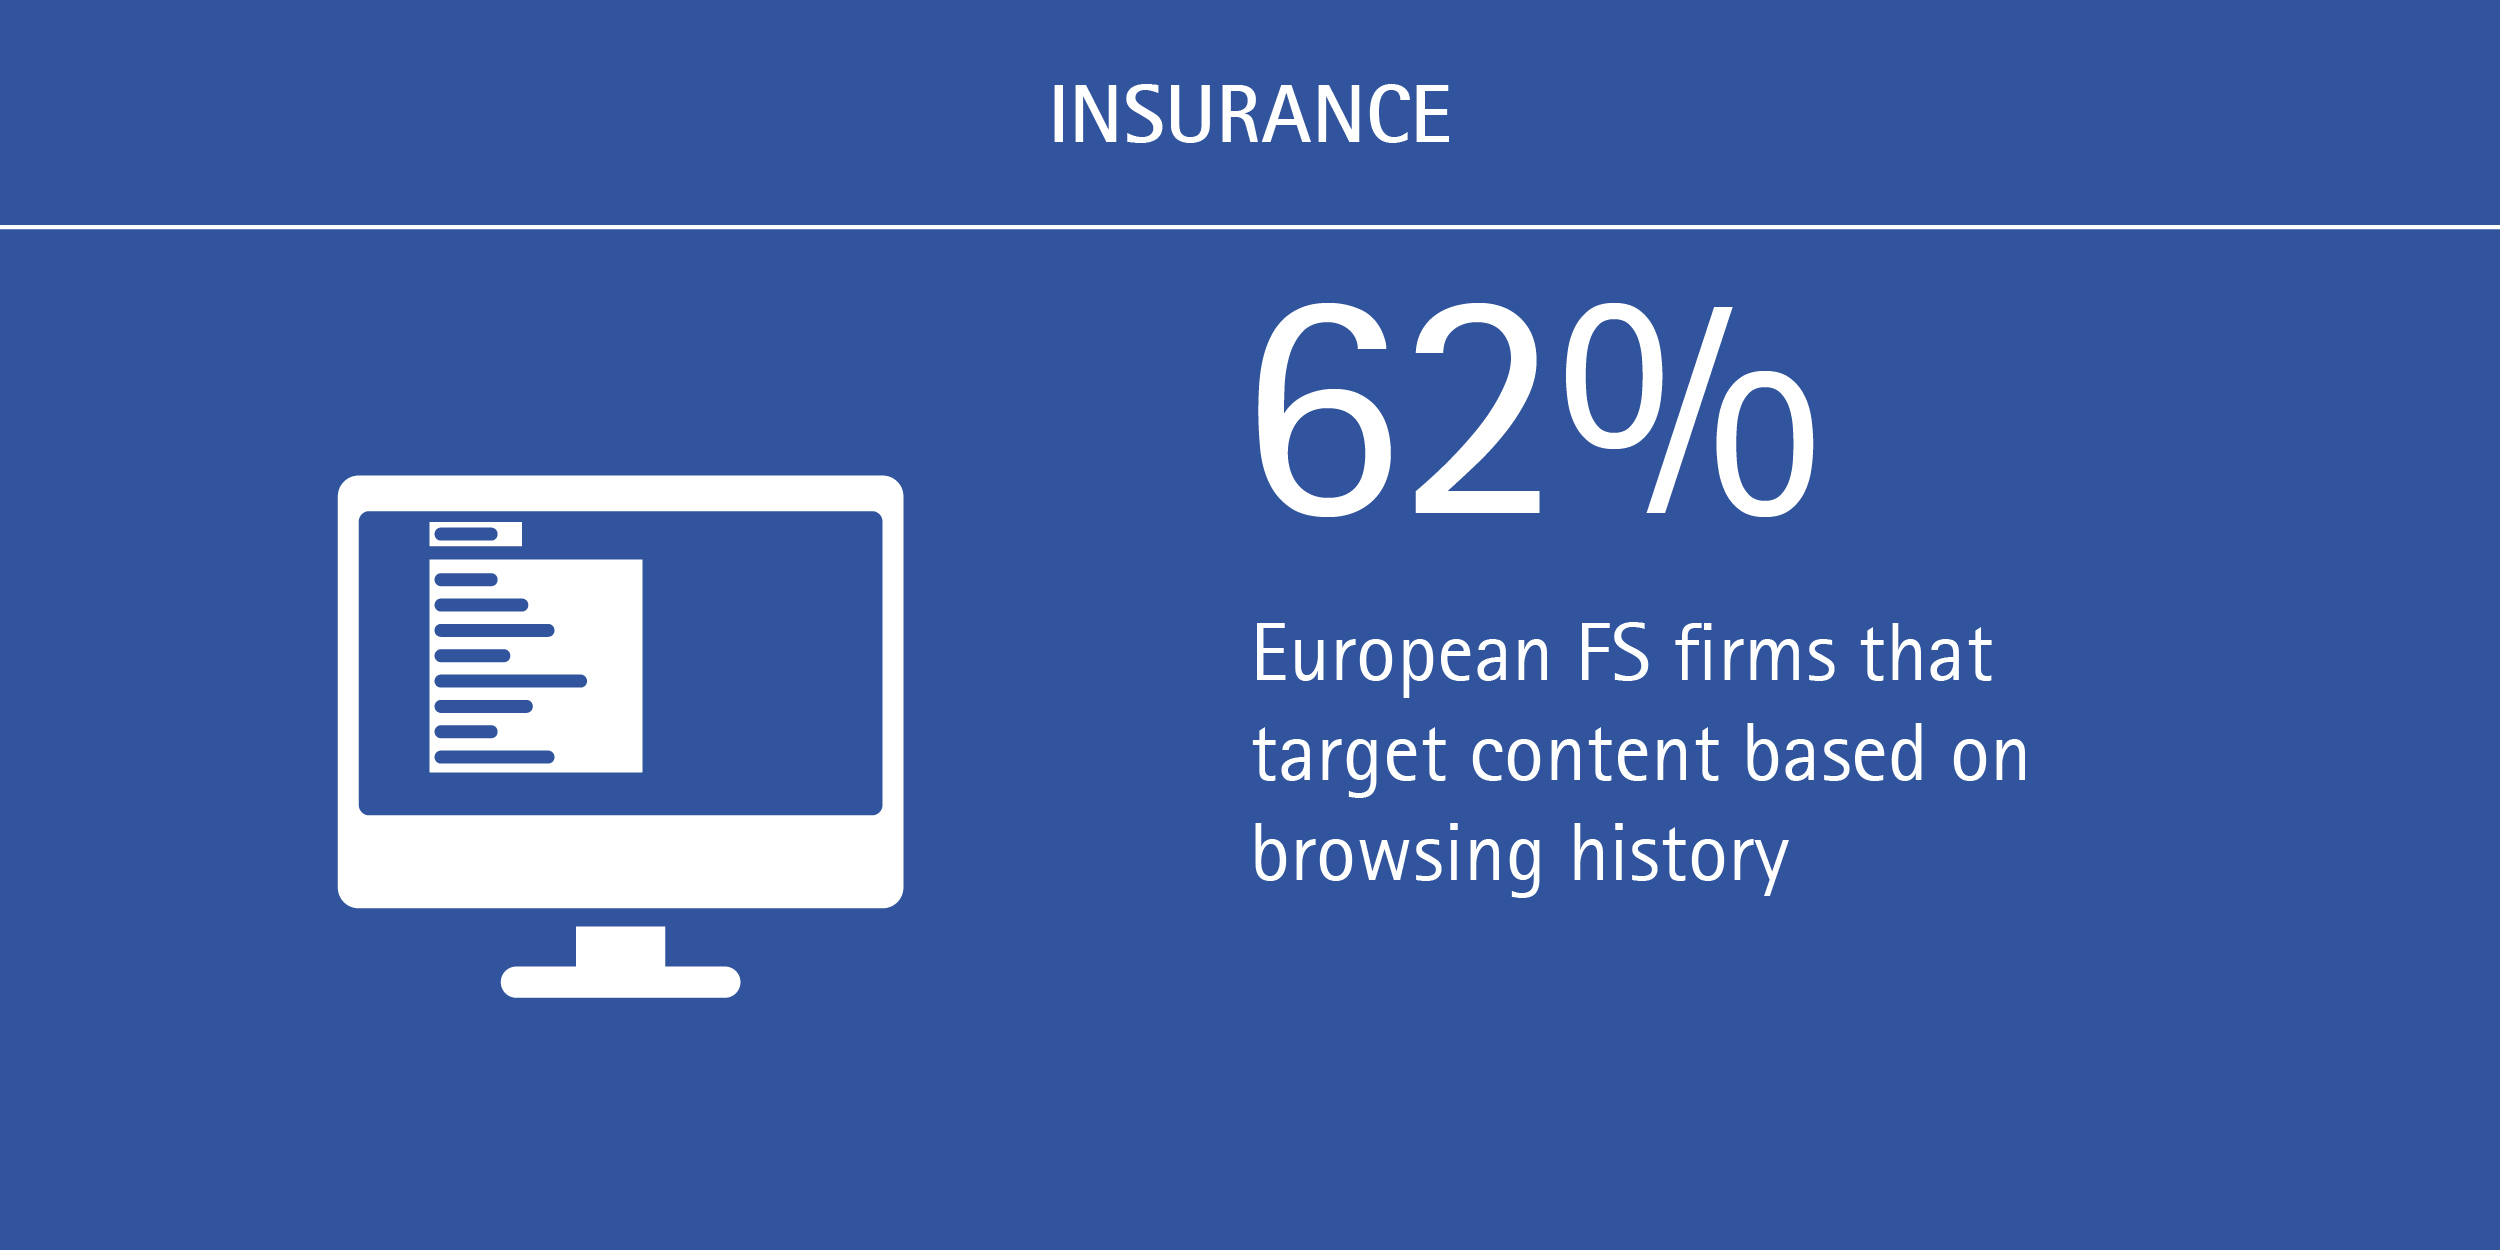 European financial services firms need to engage more with digital customers_Accenture INS (Figure 2)